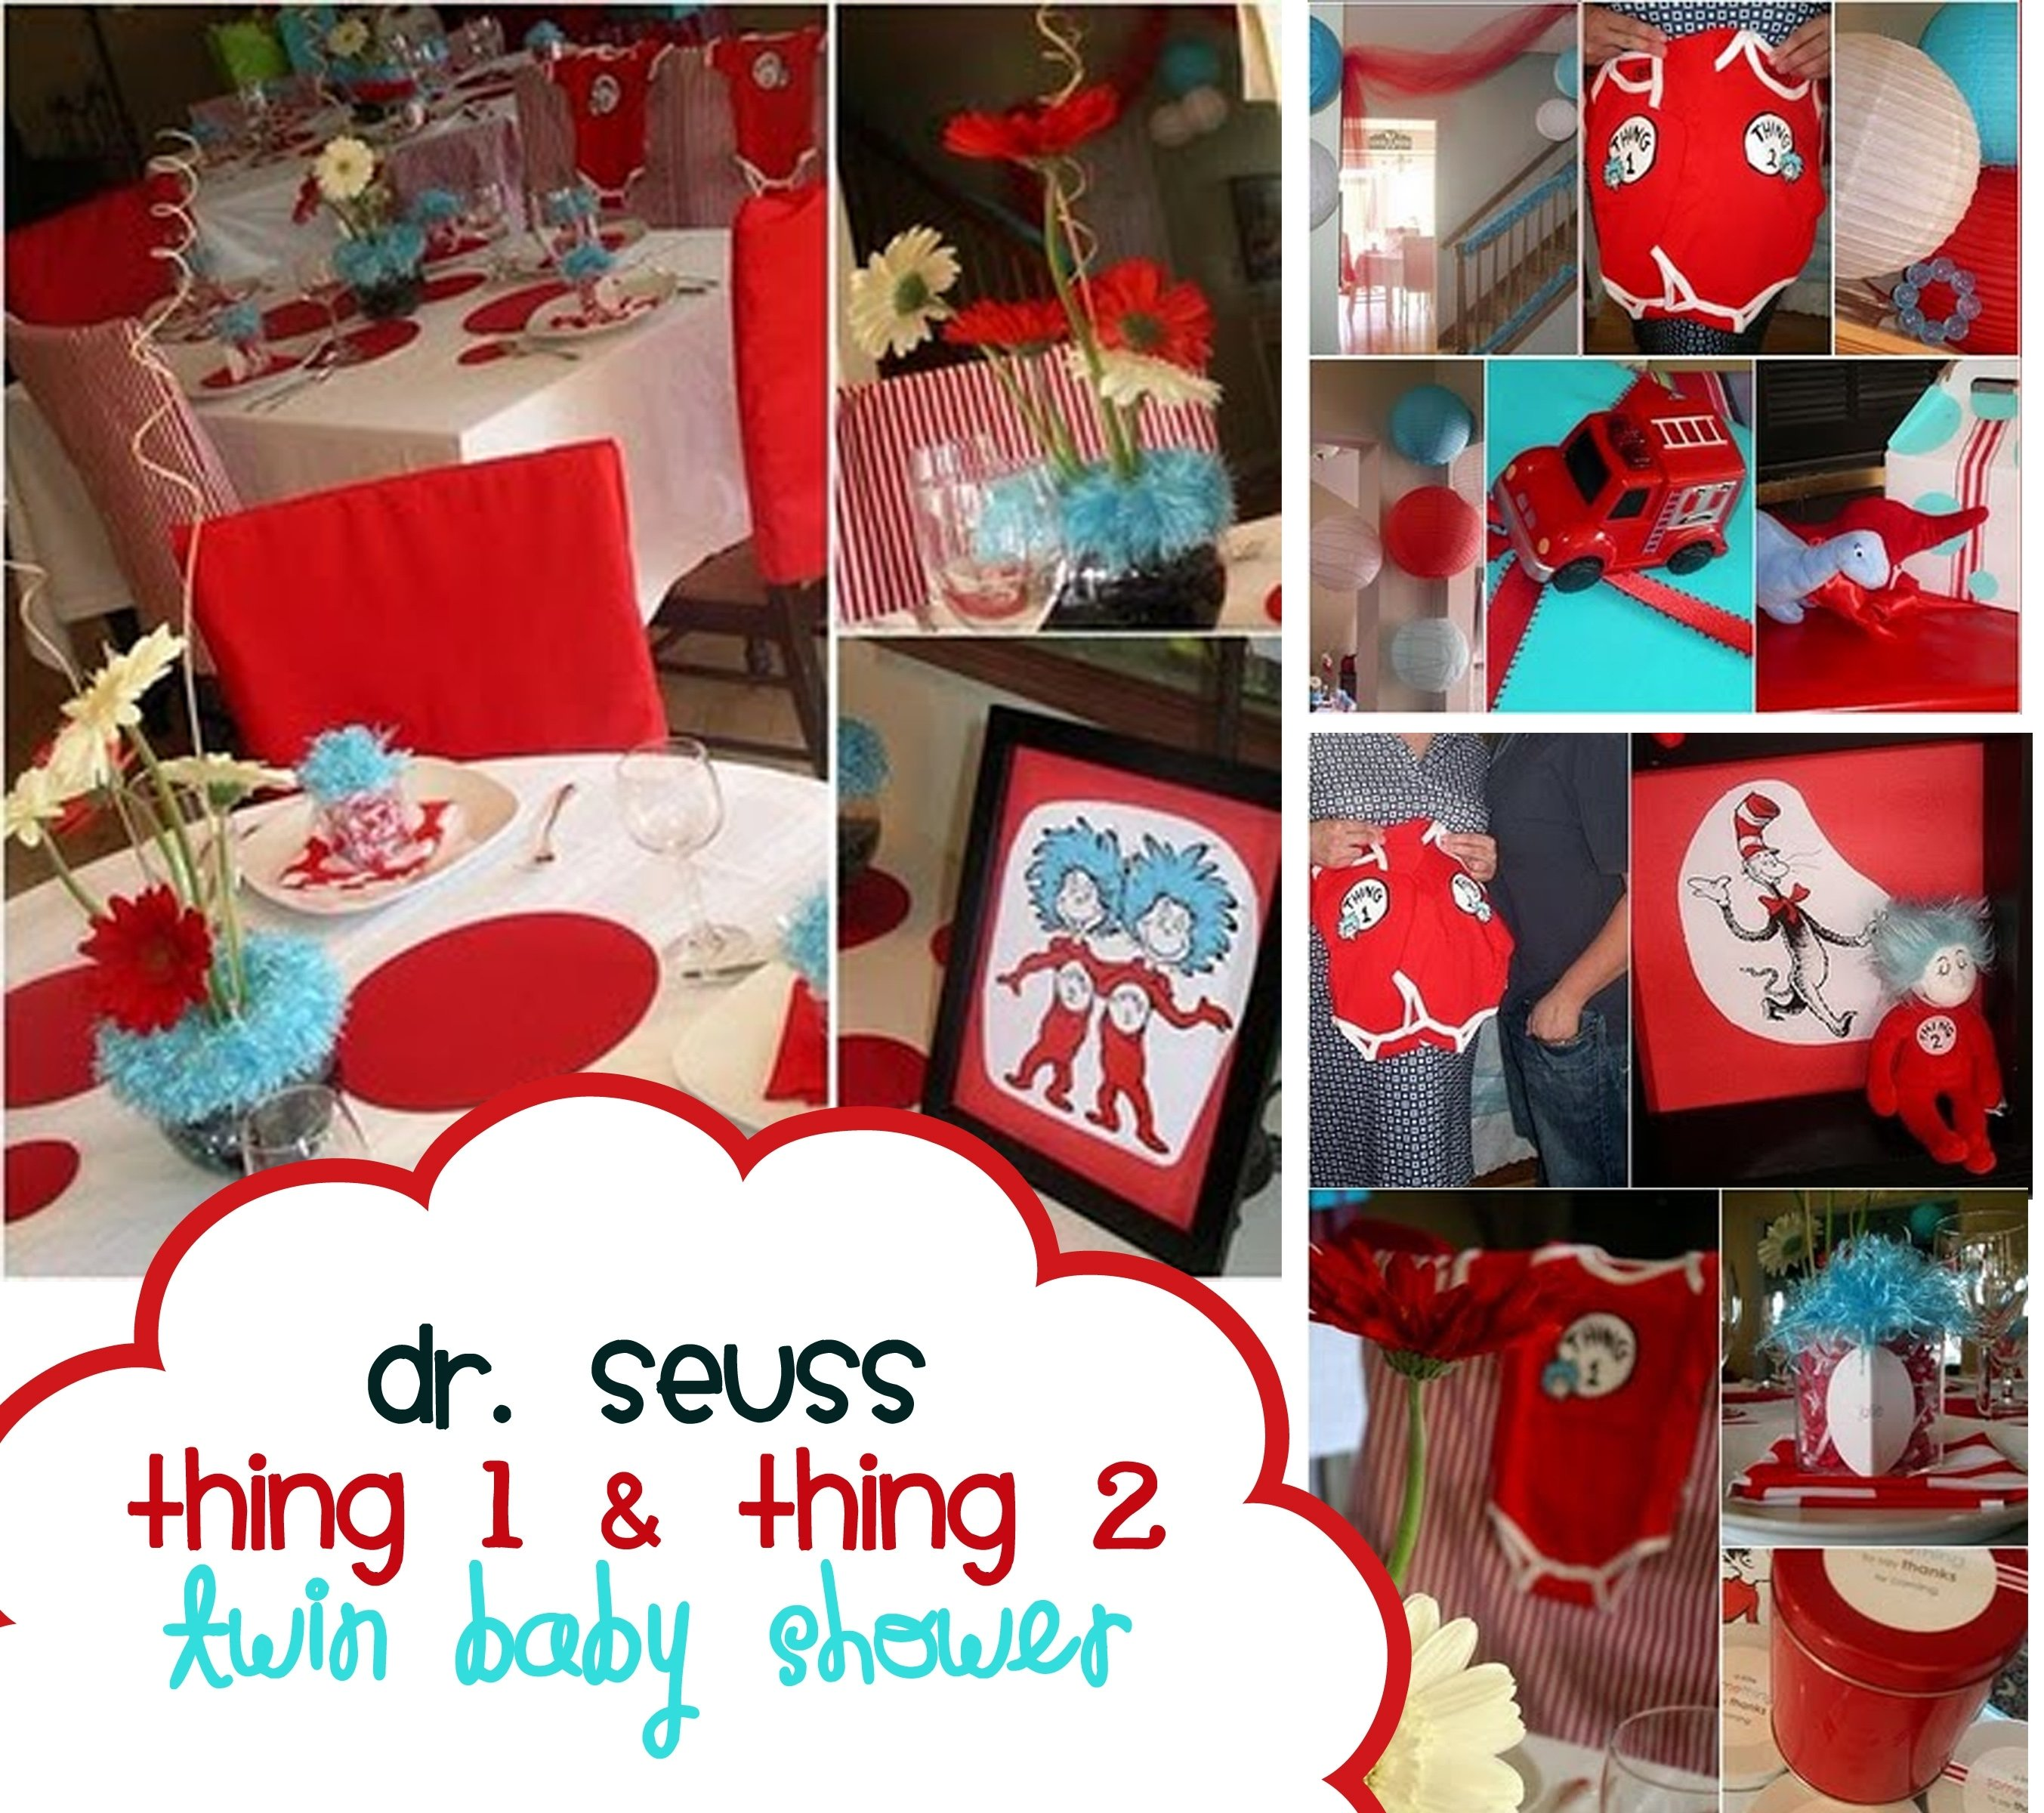 10 Cute Baby Shower Ideas For Twin Boys dr suess baby shower bing images party on pinterest dr 4